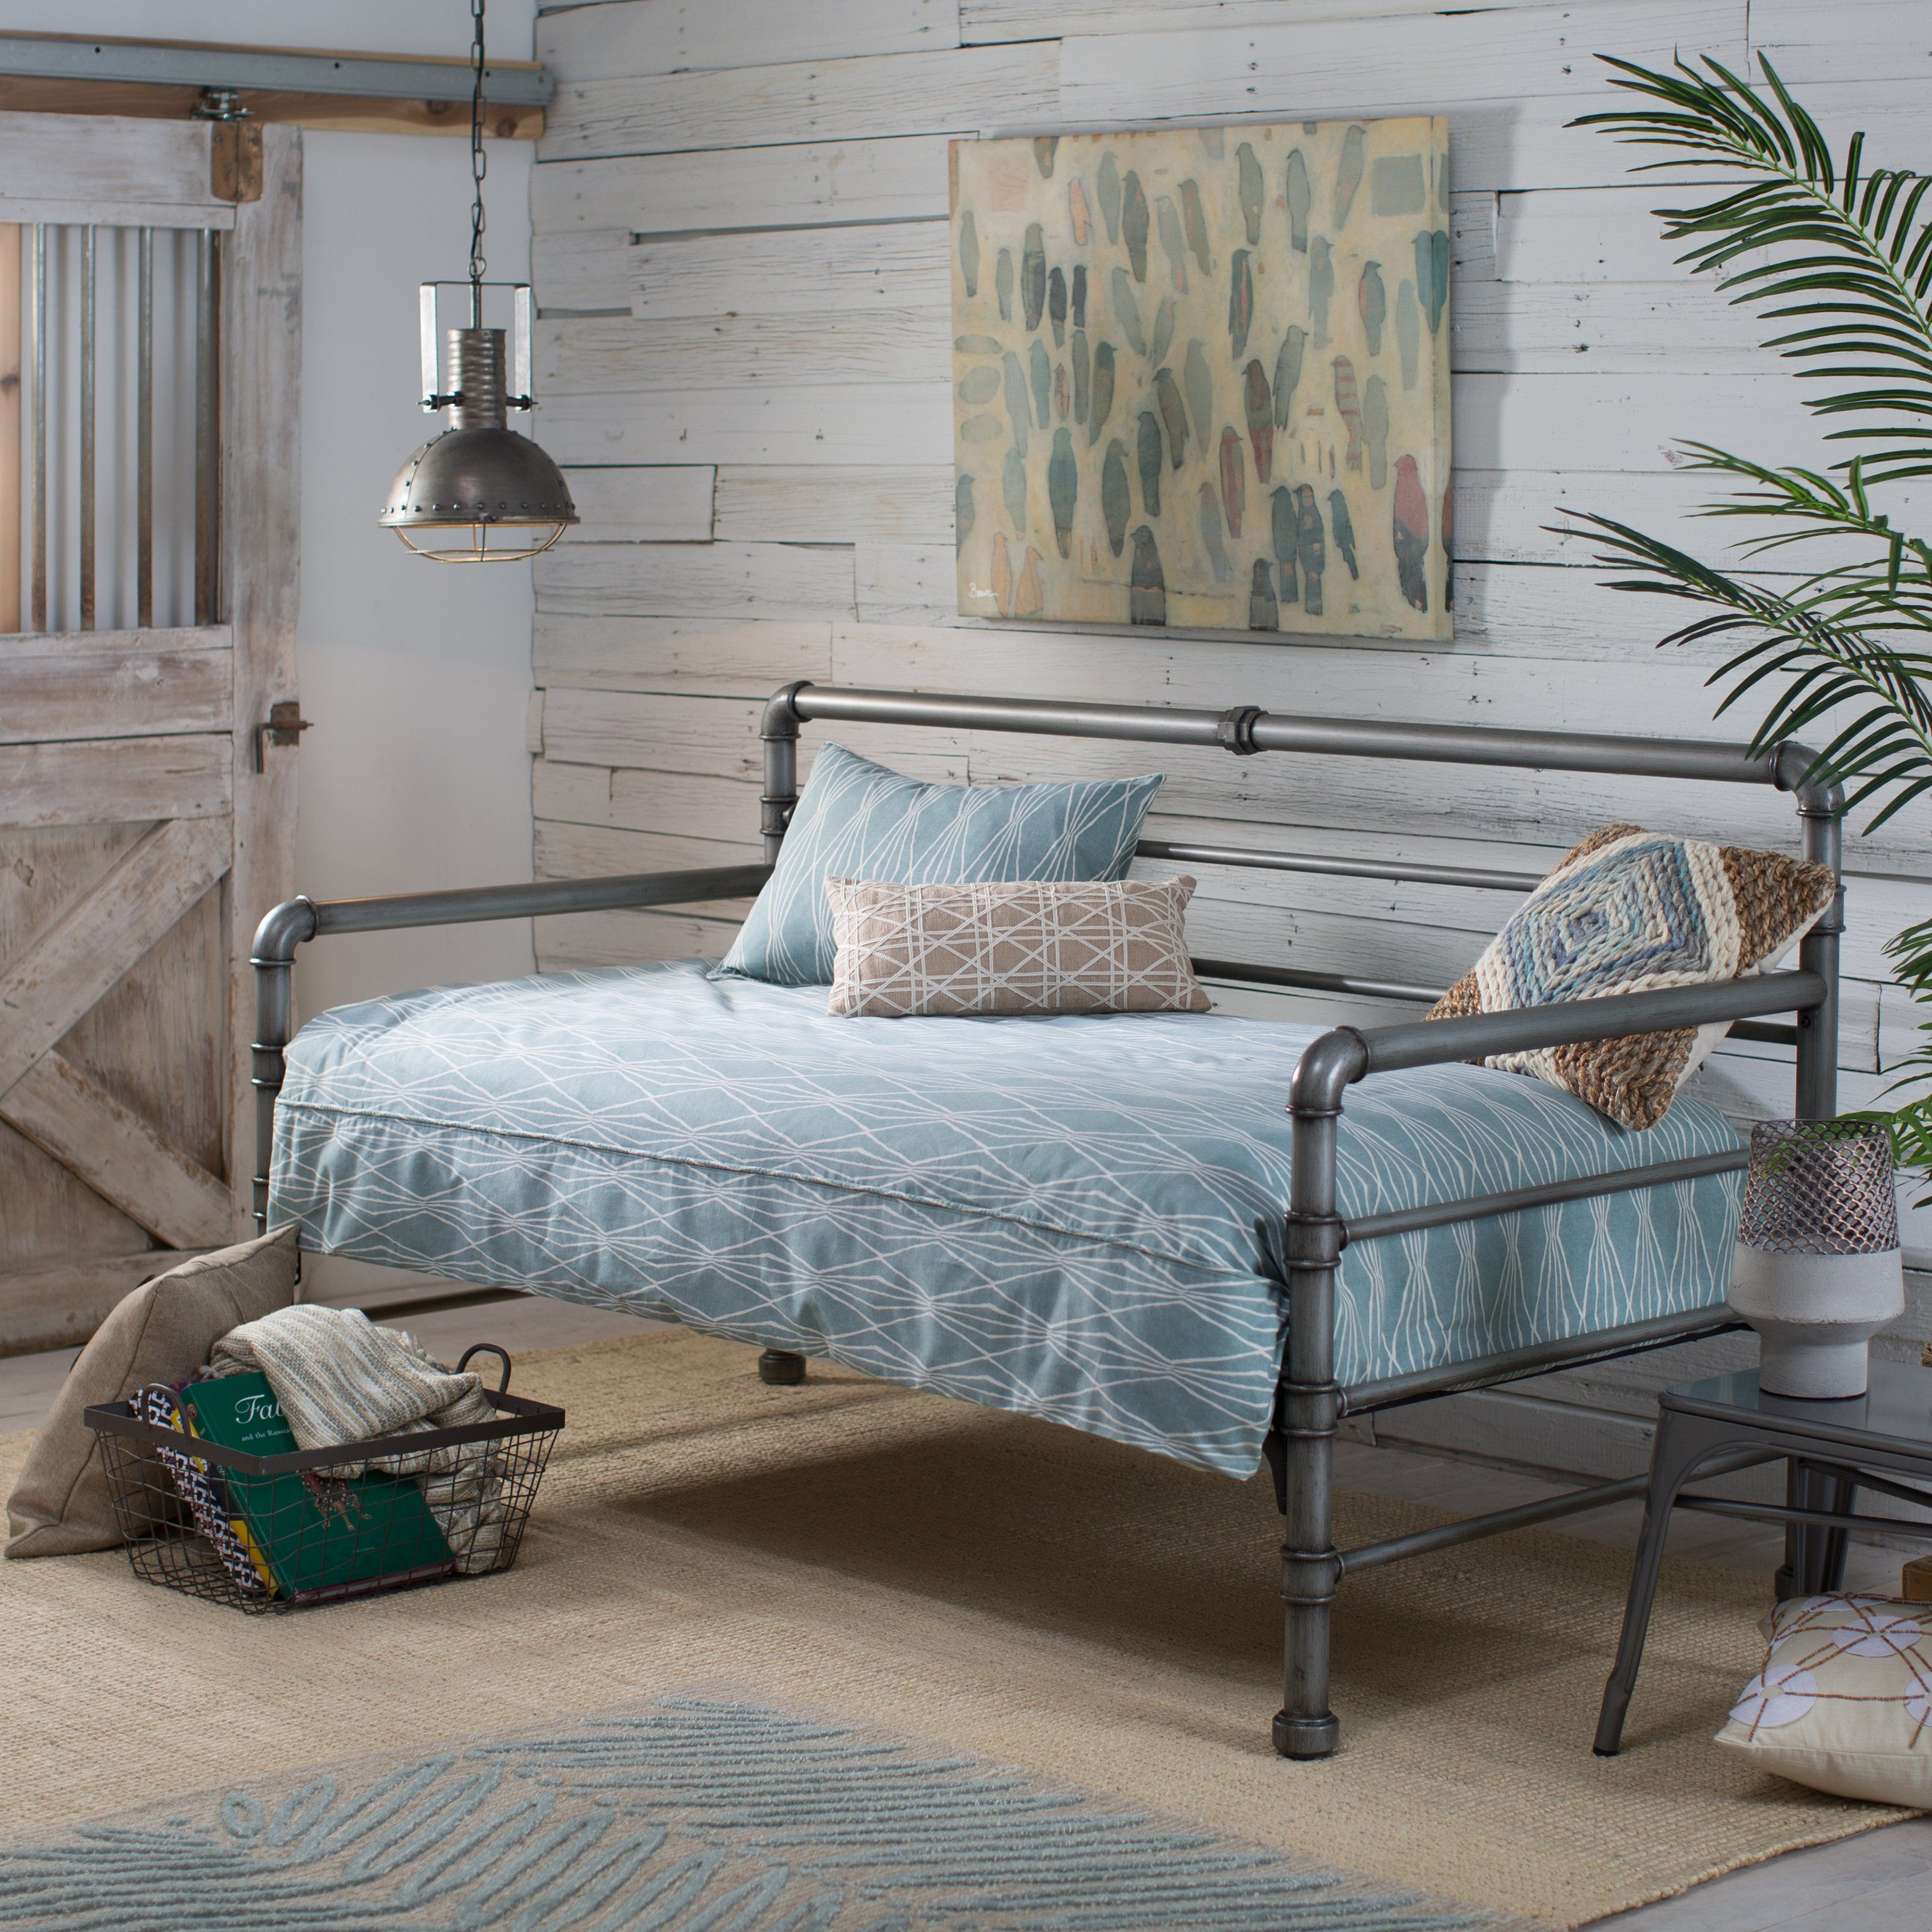 Diy Inspiration Daybeds: Belham Living Emerson Pipe Daybed